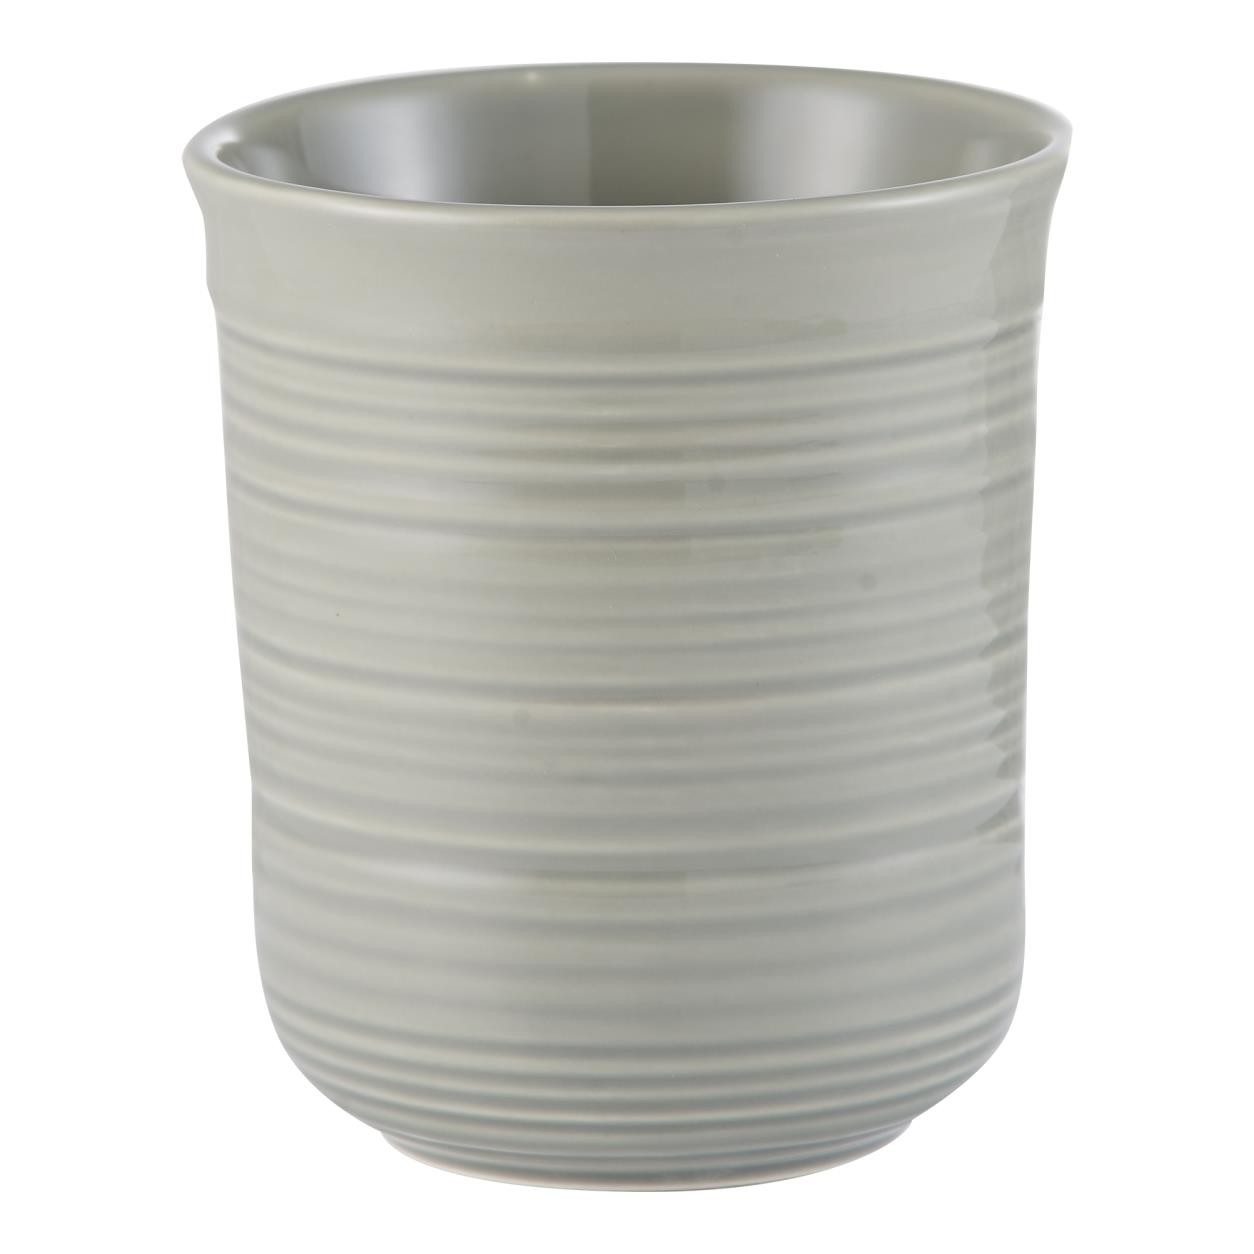 WILLIAM MASON UTENSIL POT GREY